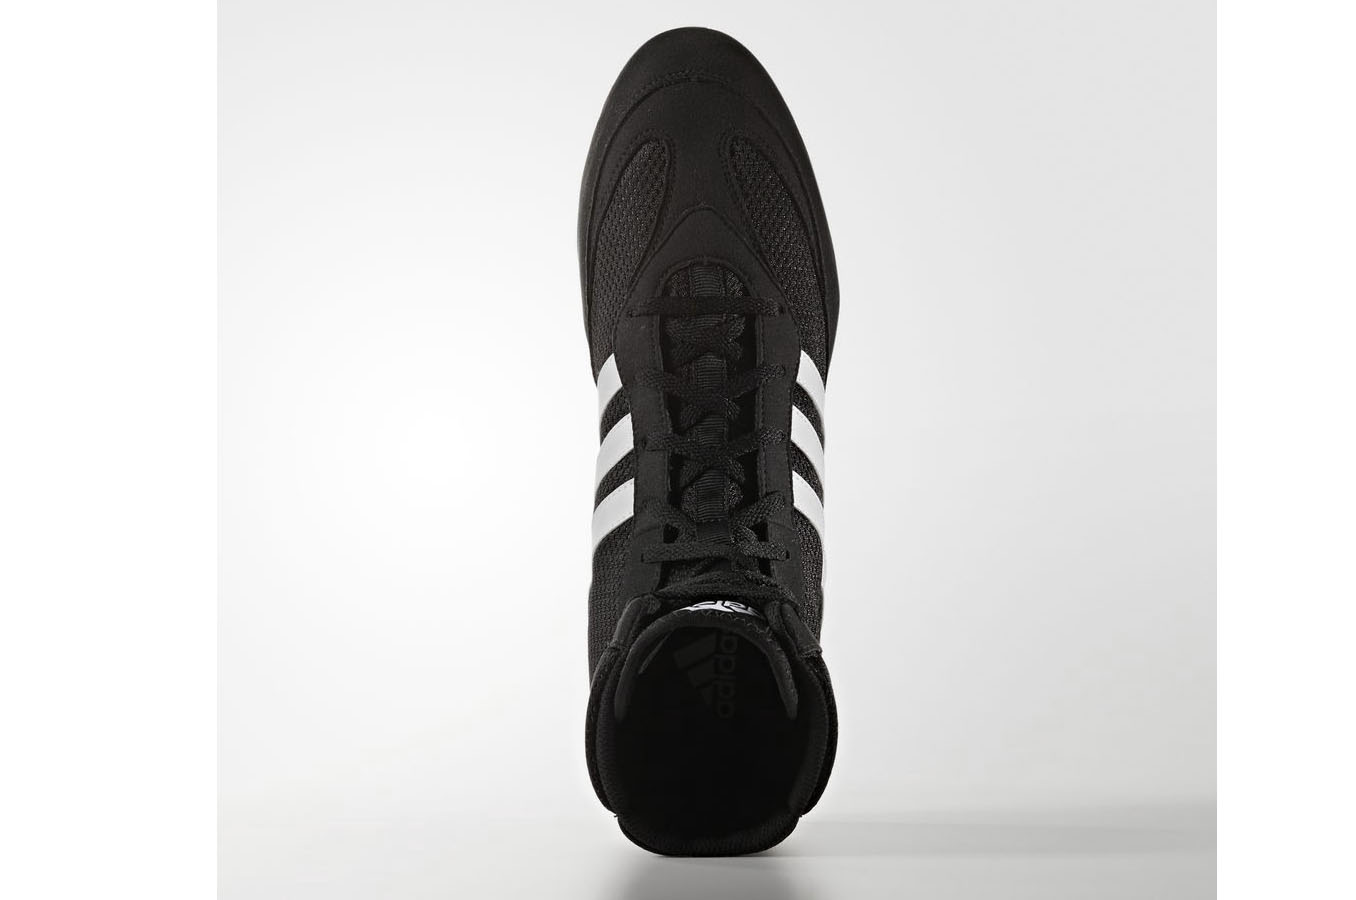 Ba7928Adidas Dragonsports 2 De InglésBox Boxeo Hog Zapatos eu HIWDYE9be2